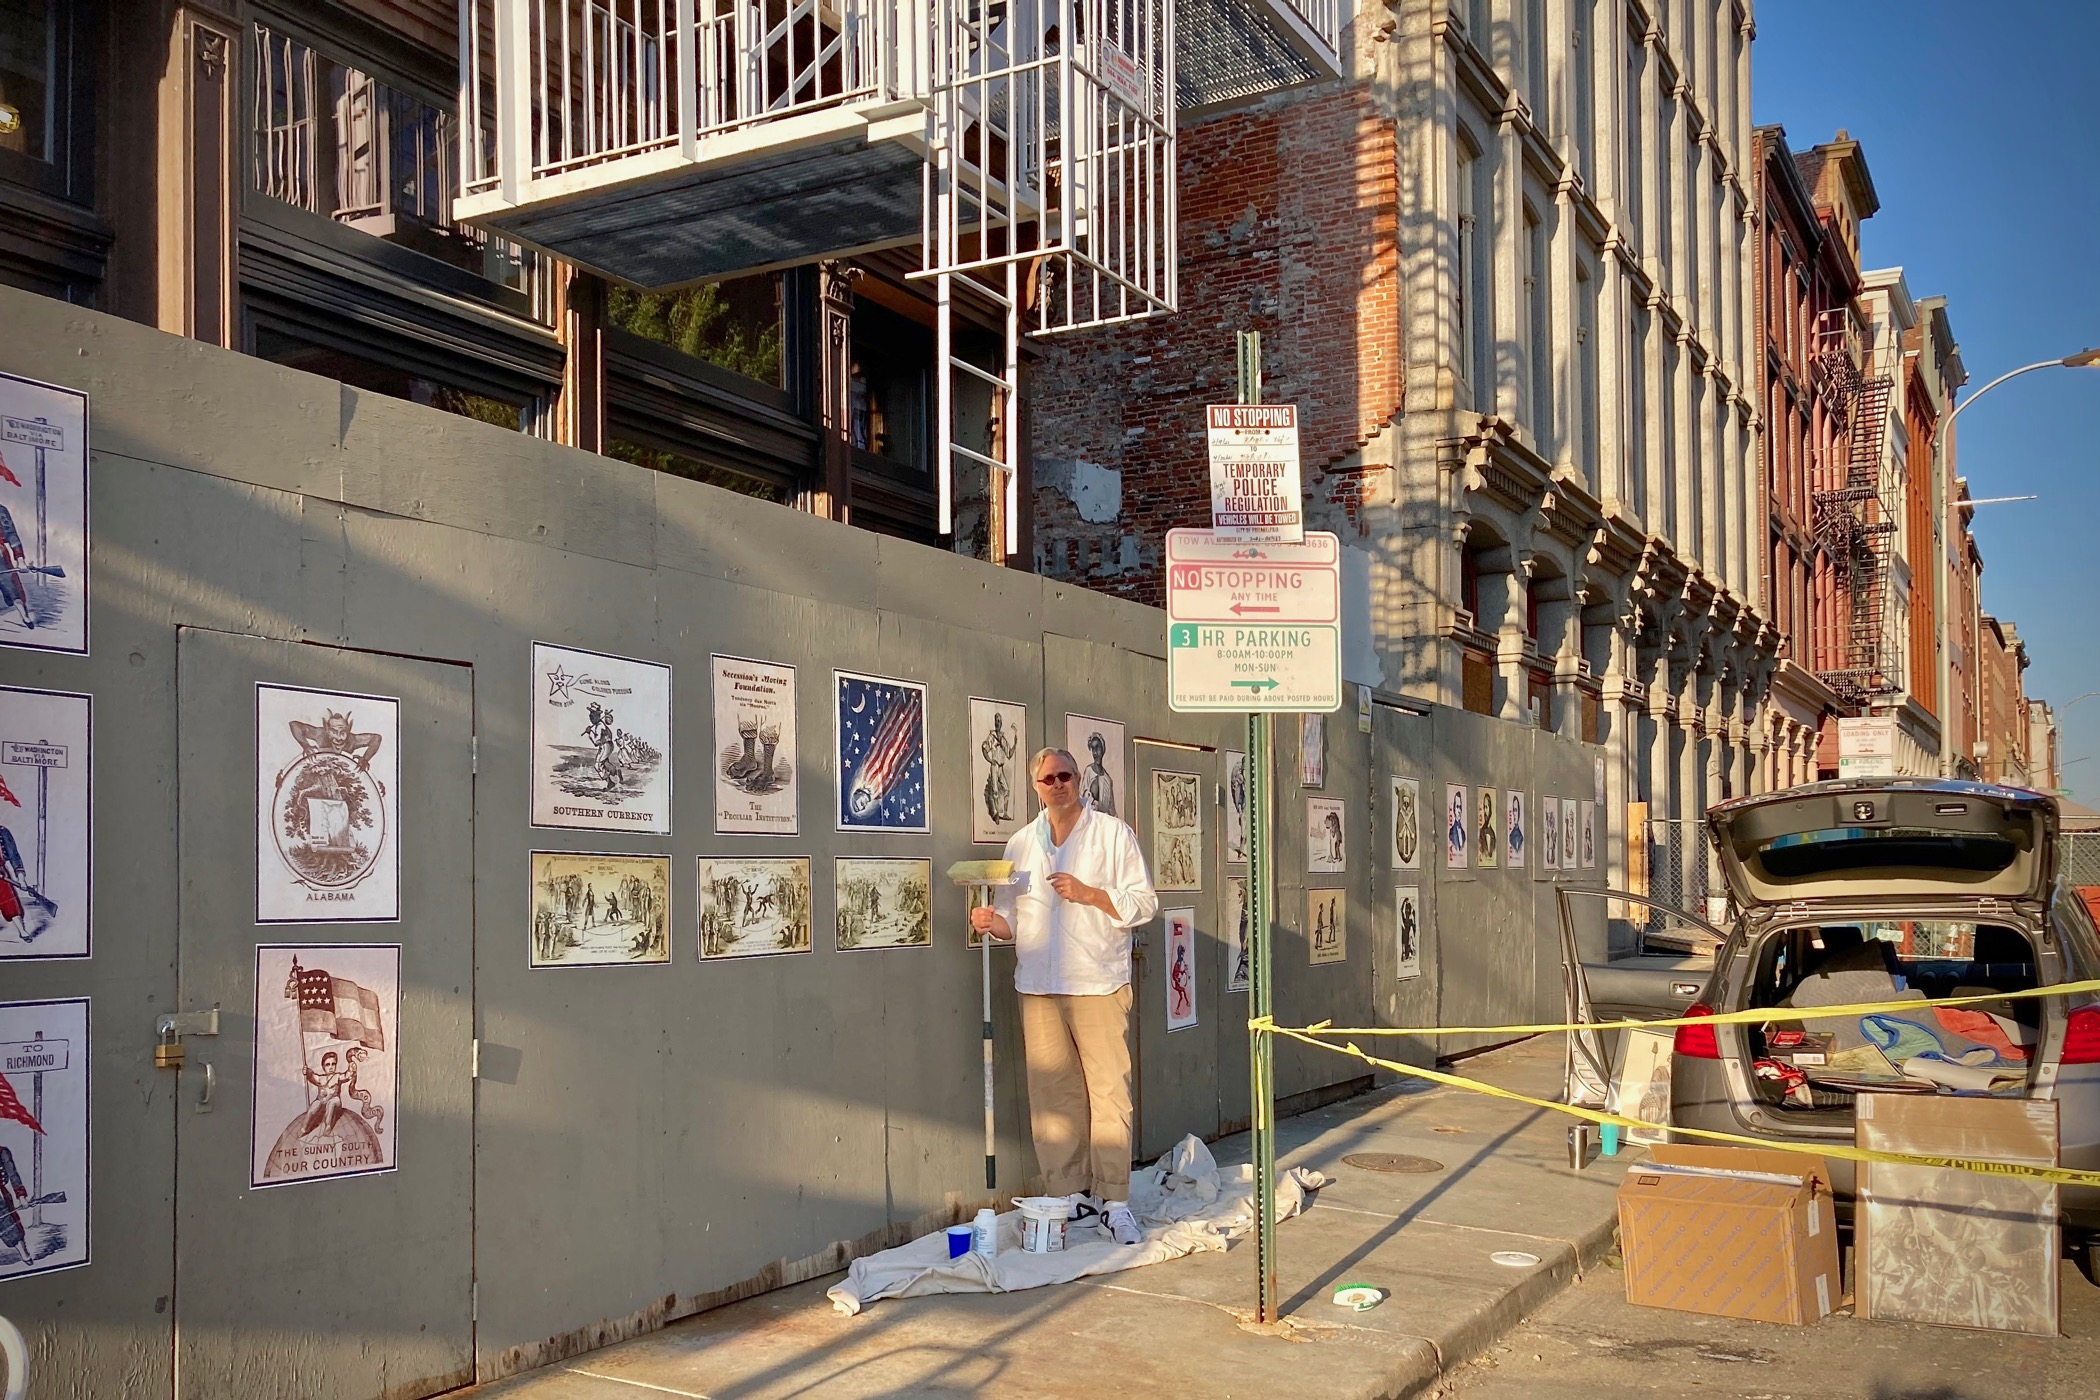 Printmaker Todd Kimmell installs a series of Civil War Era political cartoons on a construction wall at 3rd and Chestnut streets. (Courtesy of Todd Kimmell)